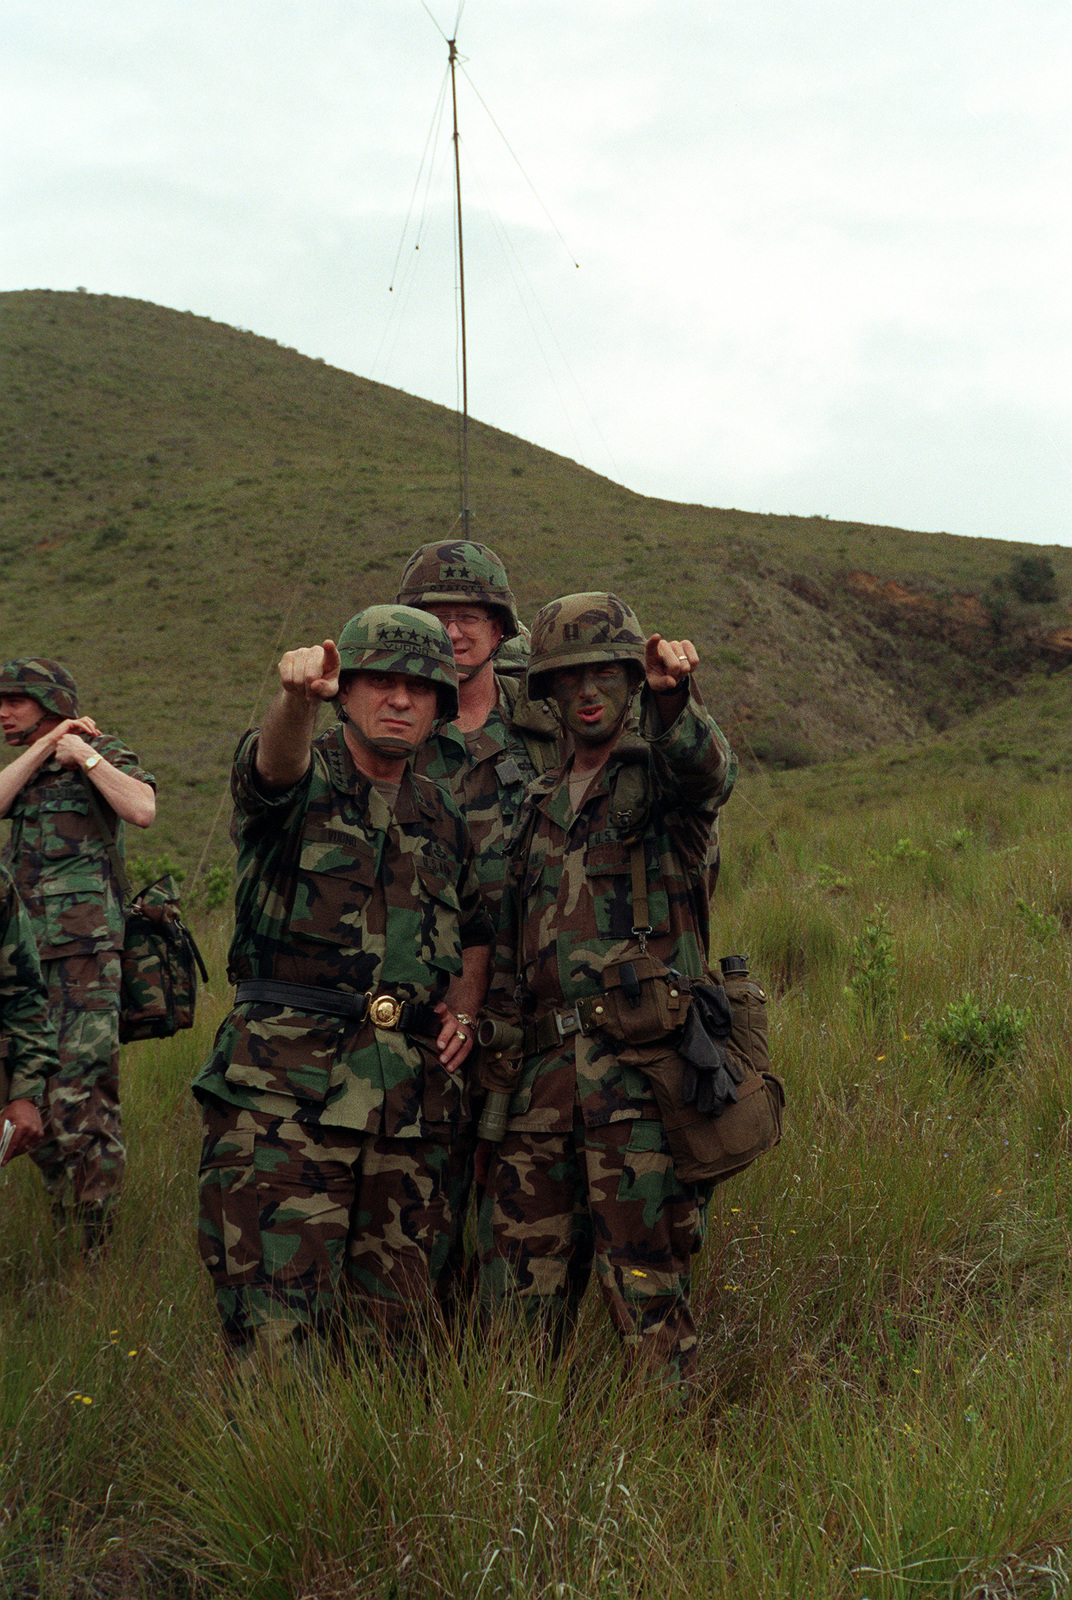 A captain with the 25th Infantry Division (Light) points out